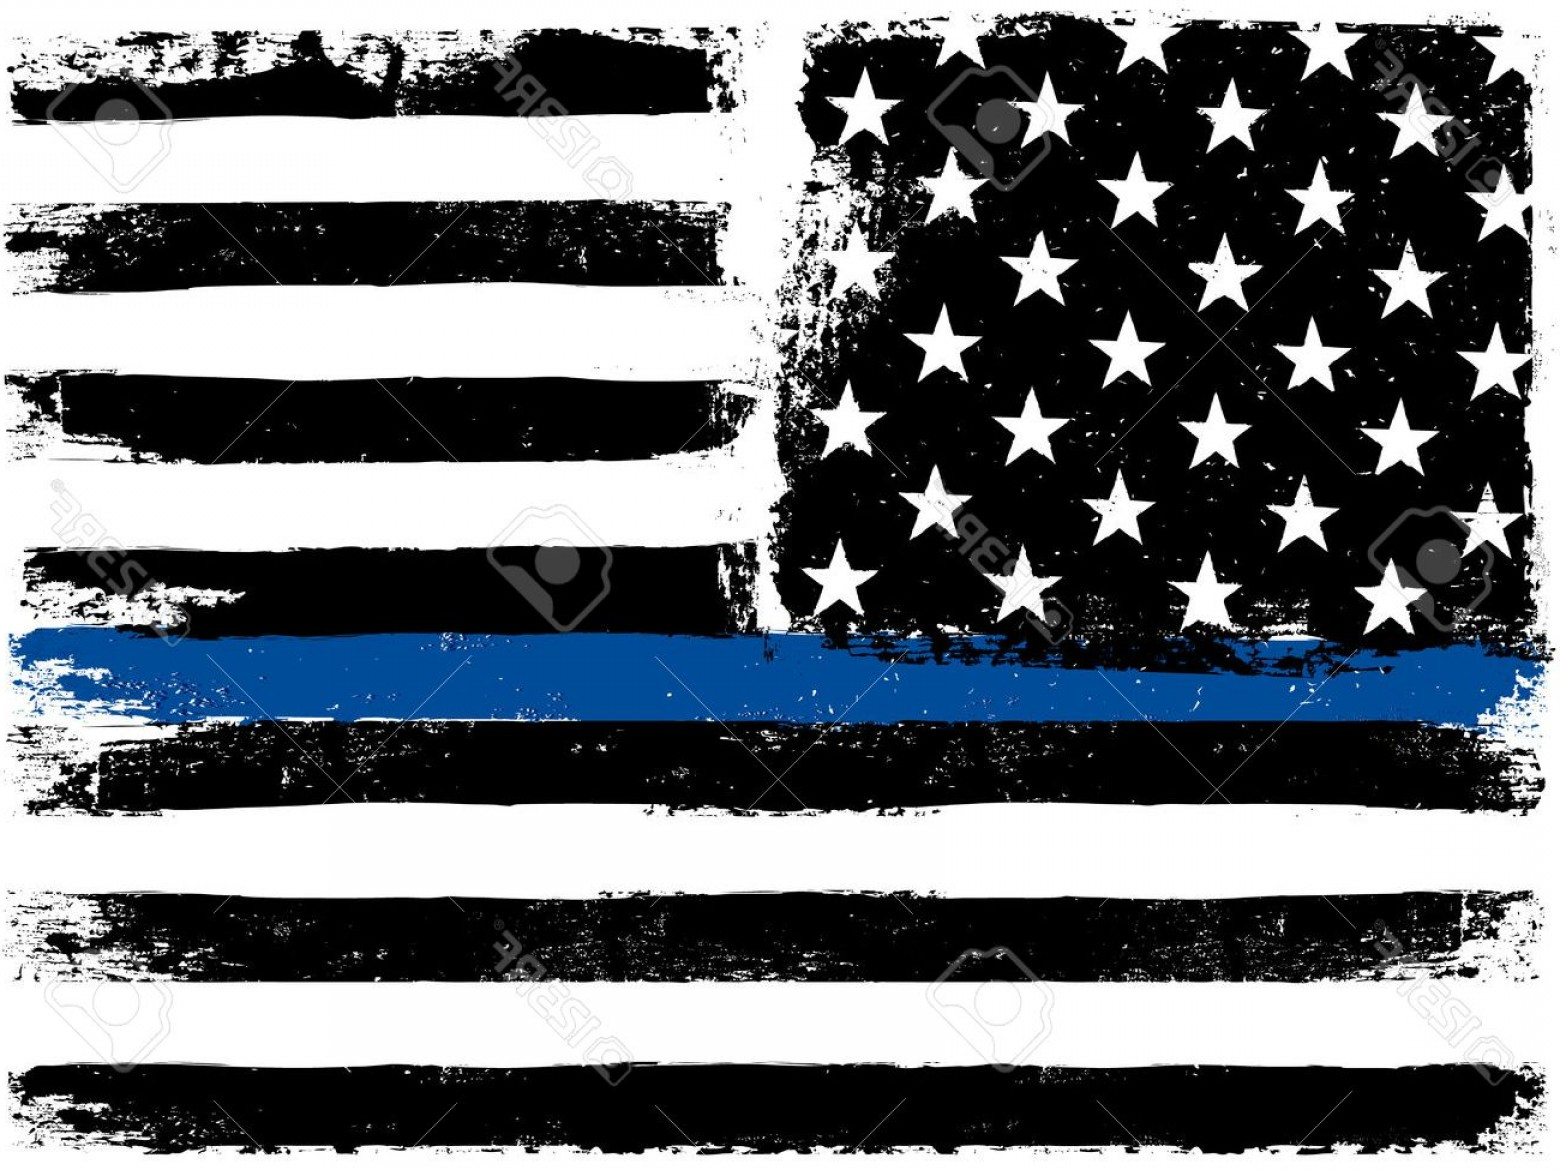 US Flag Vector Lines: Photostock Vector American Flag With Thin Blue Line Grunge Aged Background Monochrome Gamut Black And White